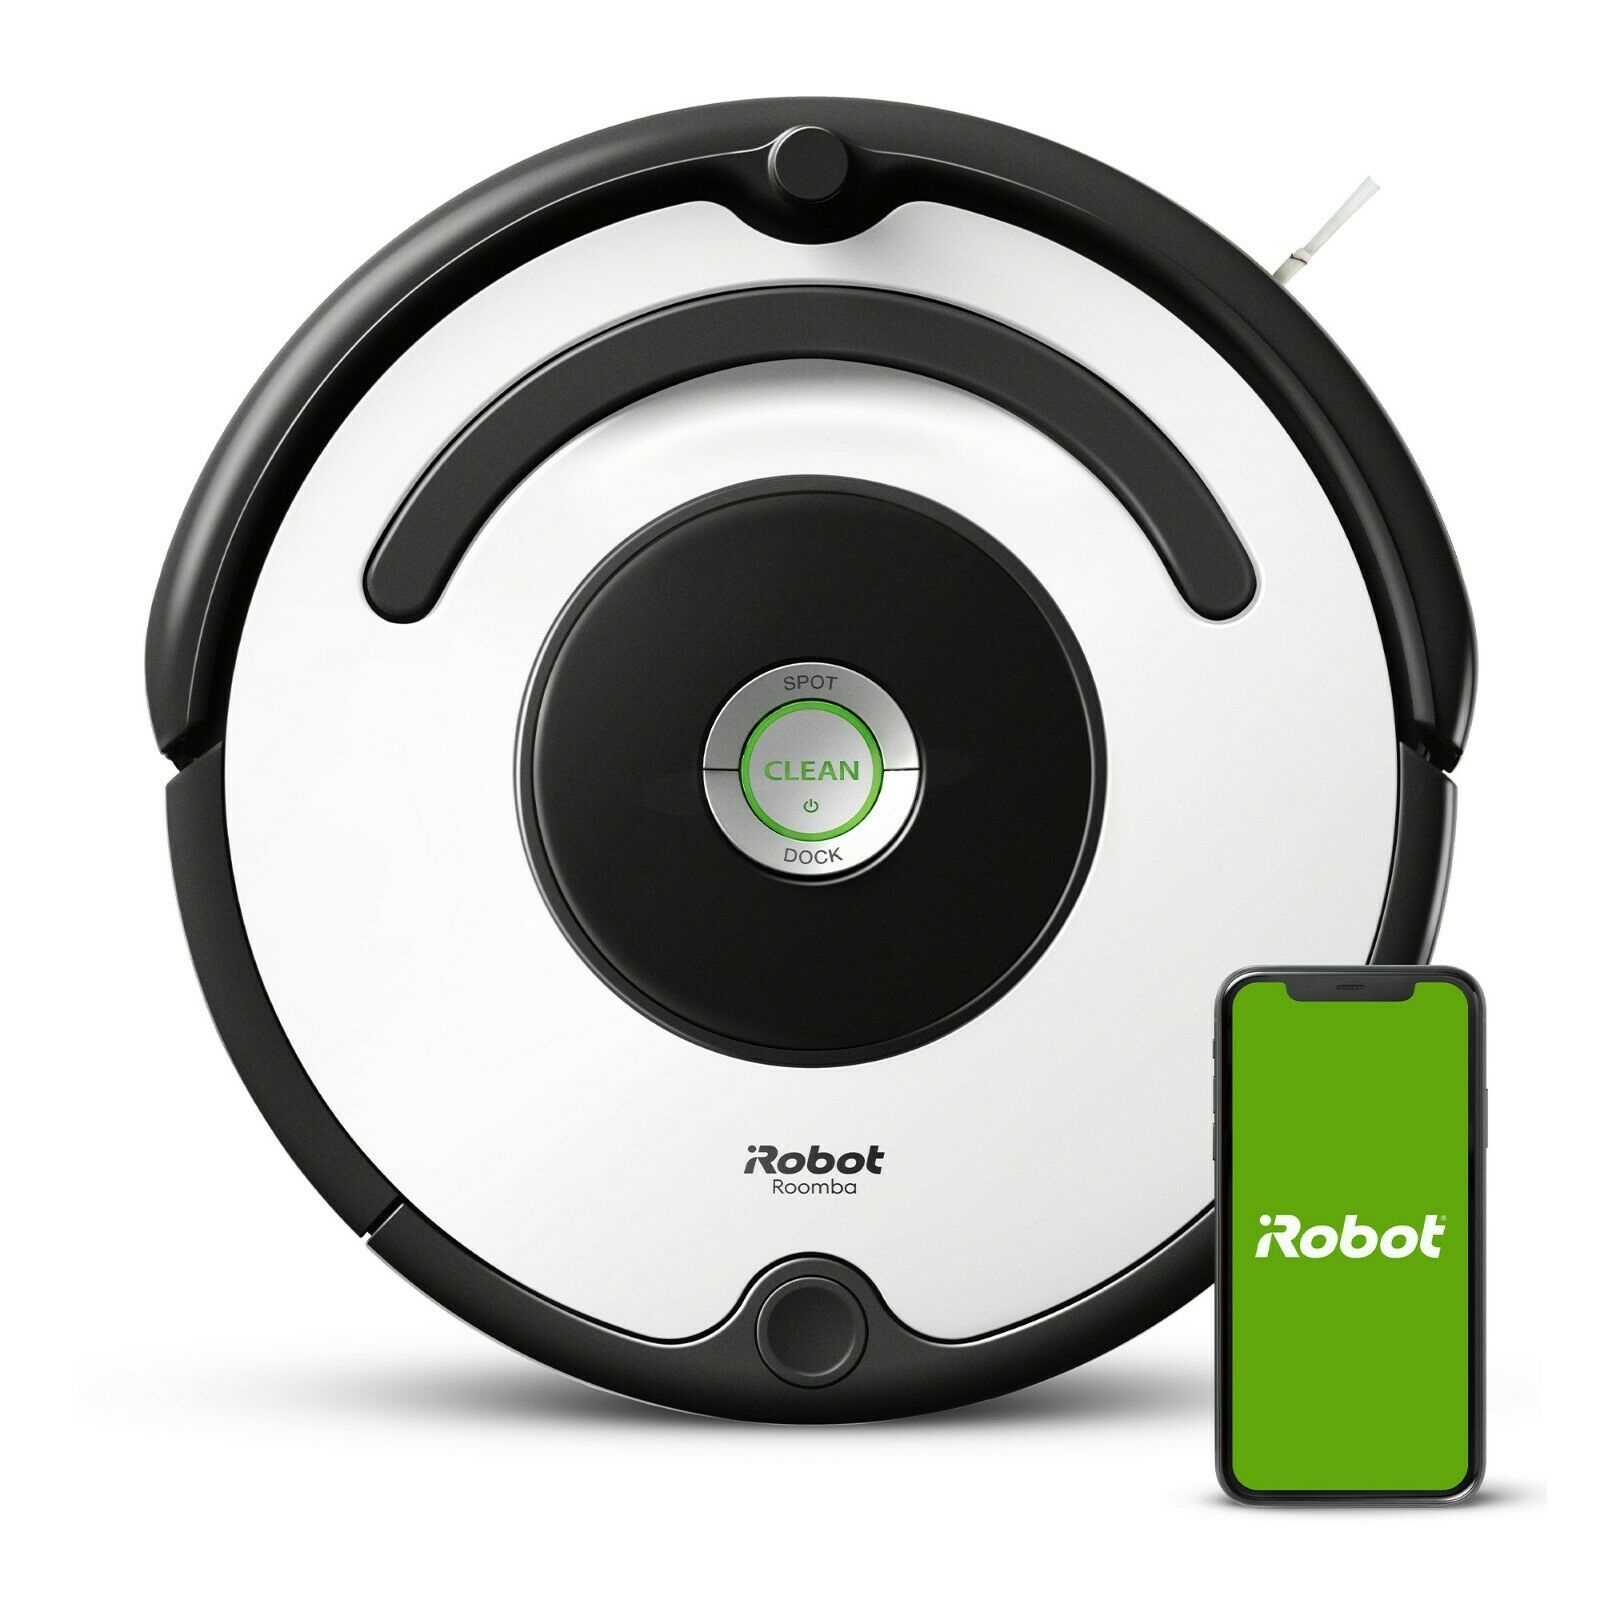 ebay.com - iRobot Roomba 670 Vacuum Cleaning Robot – Manufacturer Certified Refurbished! $169.99 + free shipping